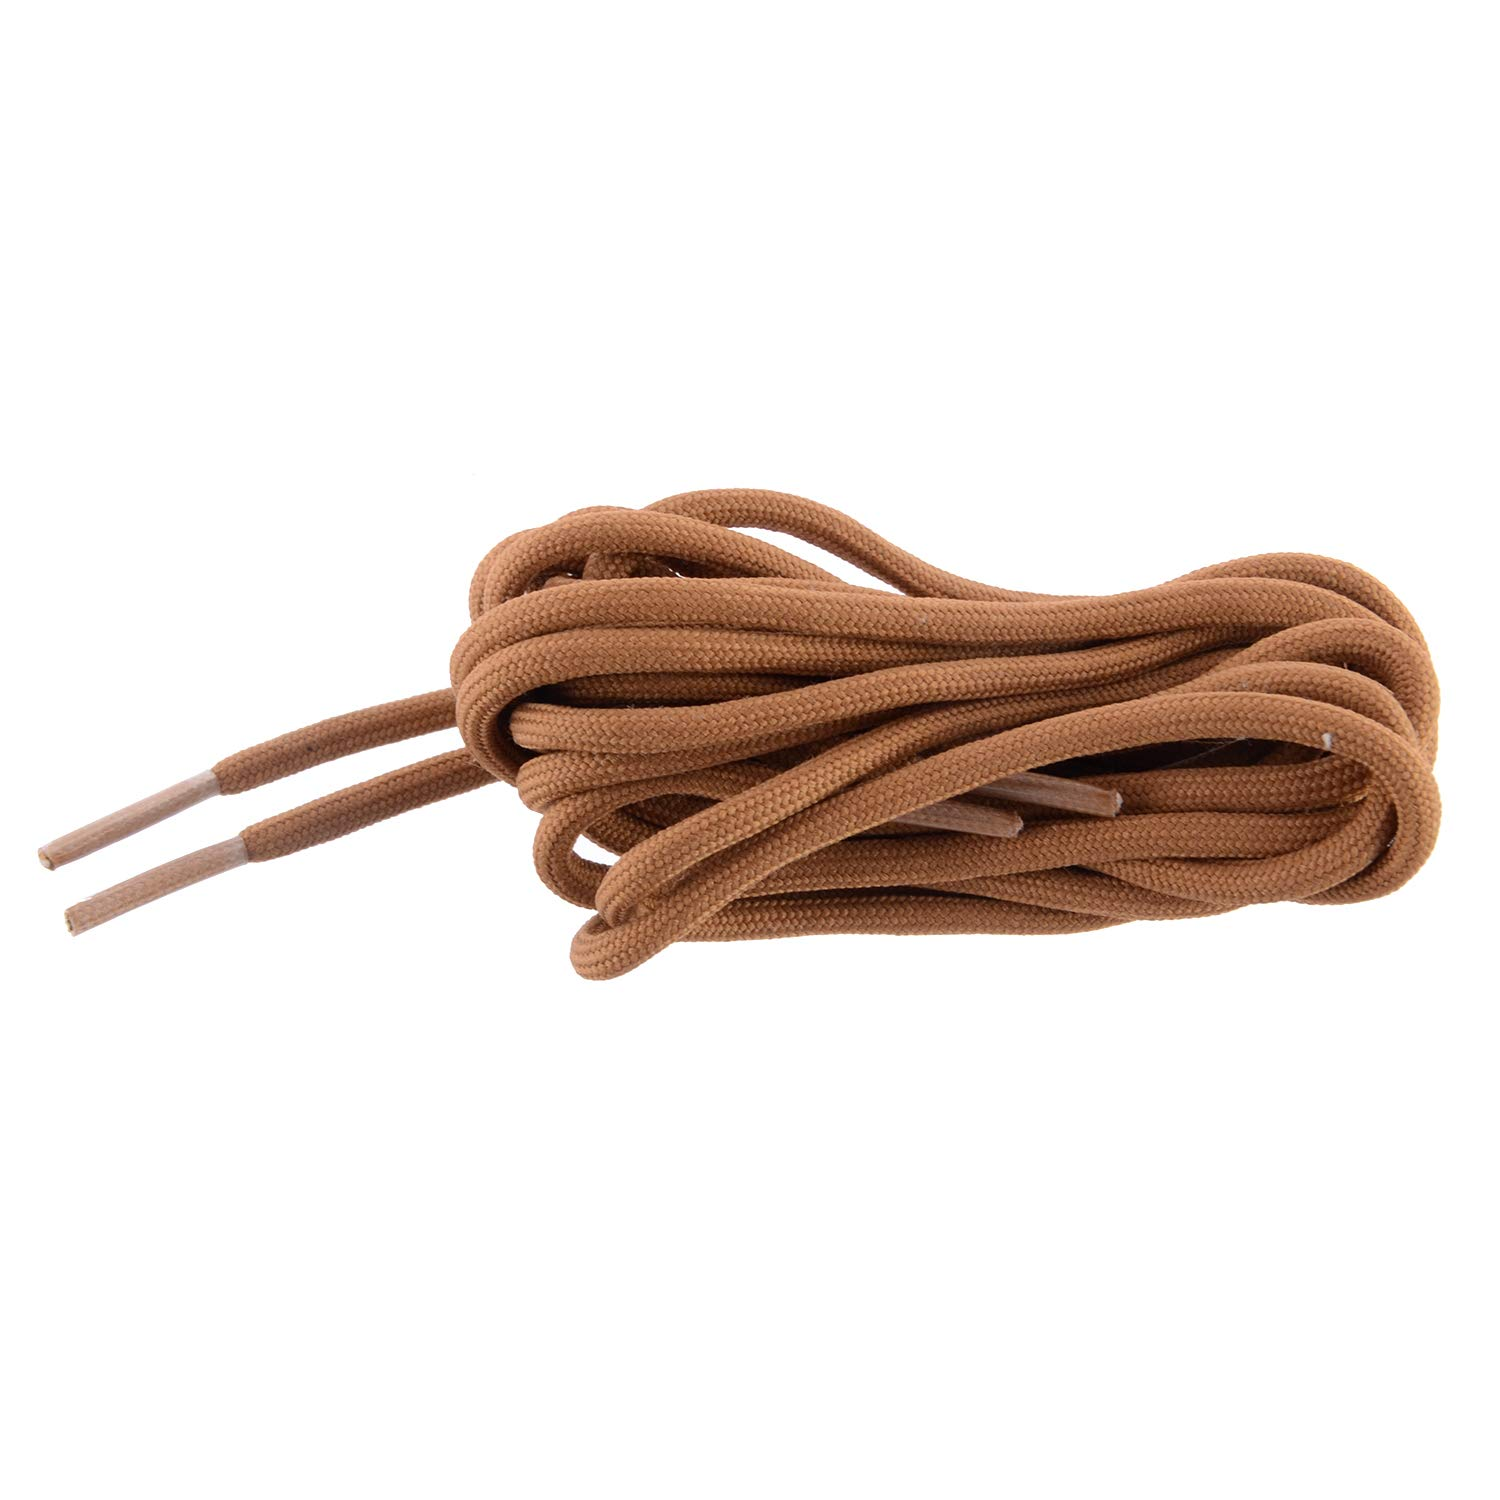 Buy B11 Round Boot Laces Hiking